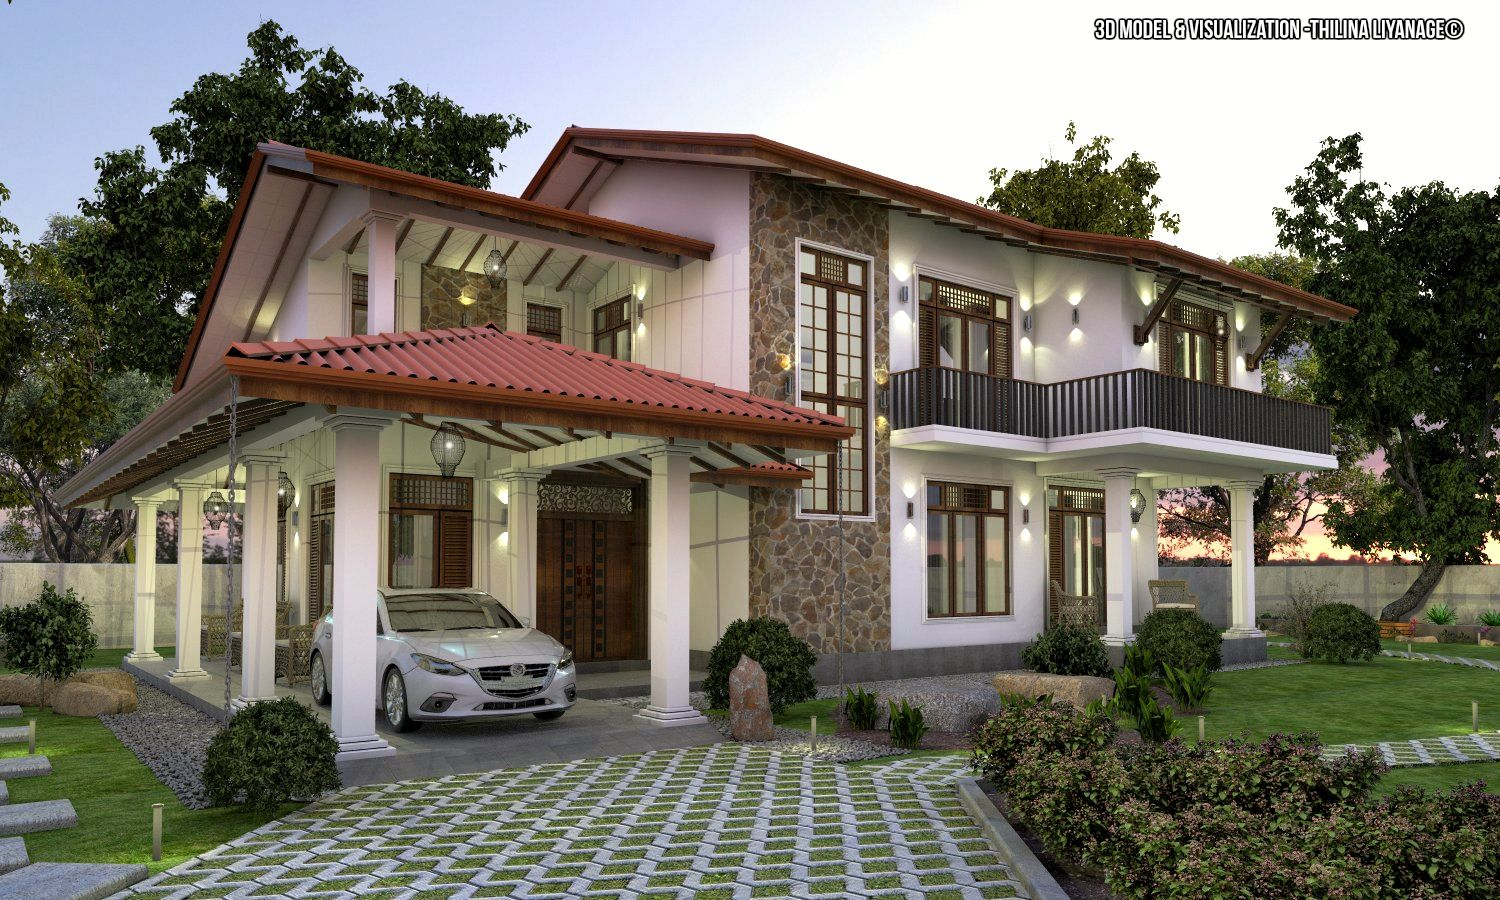 Proposed House At Nittambuwa Sri Lanka House Including Car Porch Verandah Sitting Dining Kitchen T V Lounge Large Ba Home Decor Shops House Design Porch Design